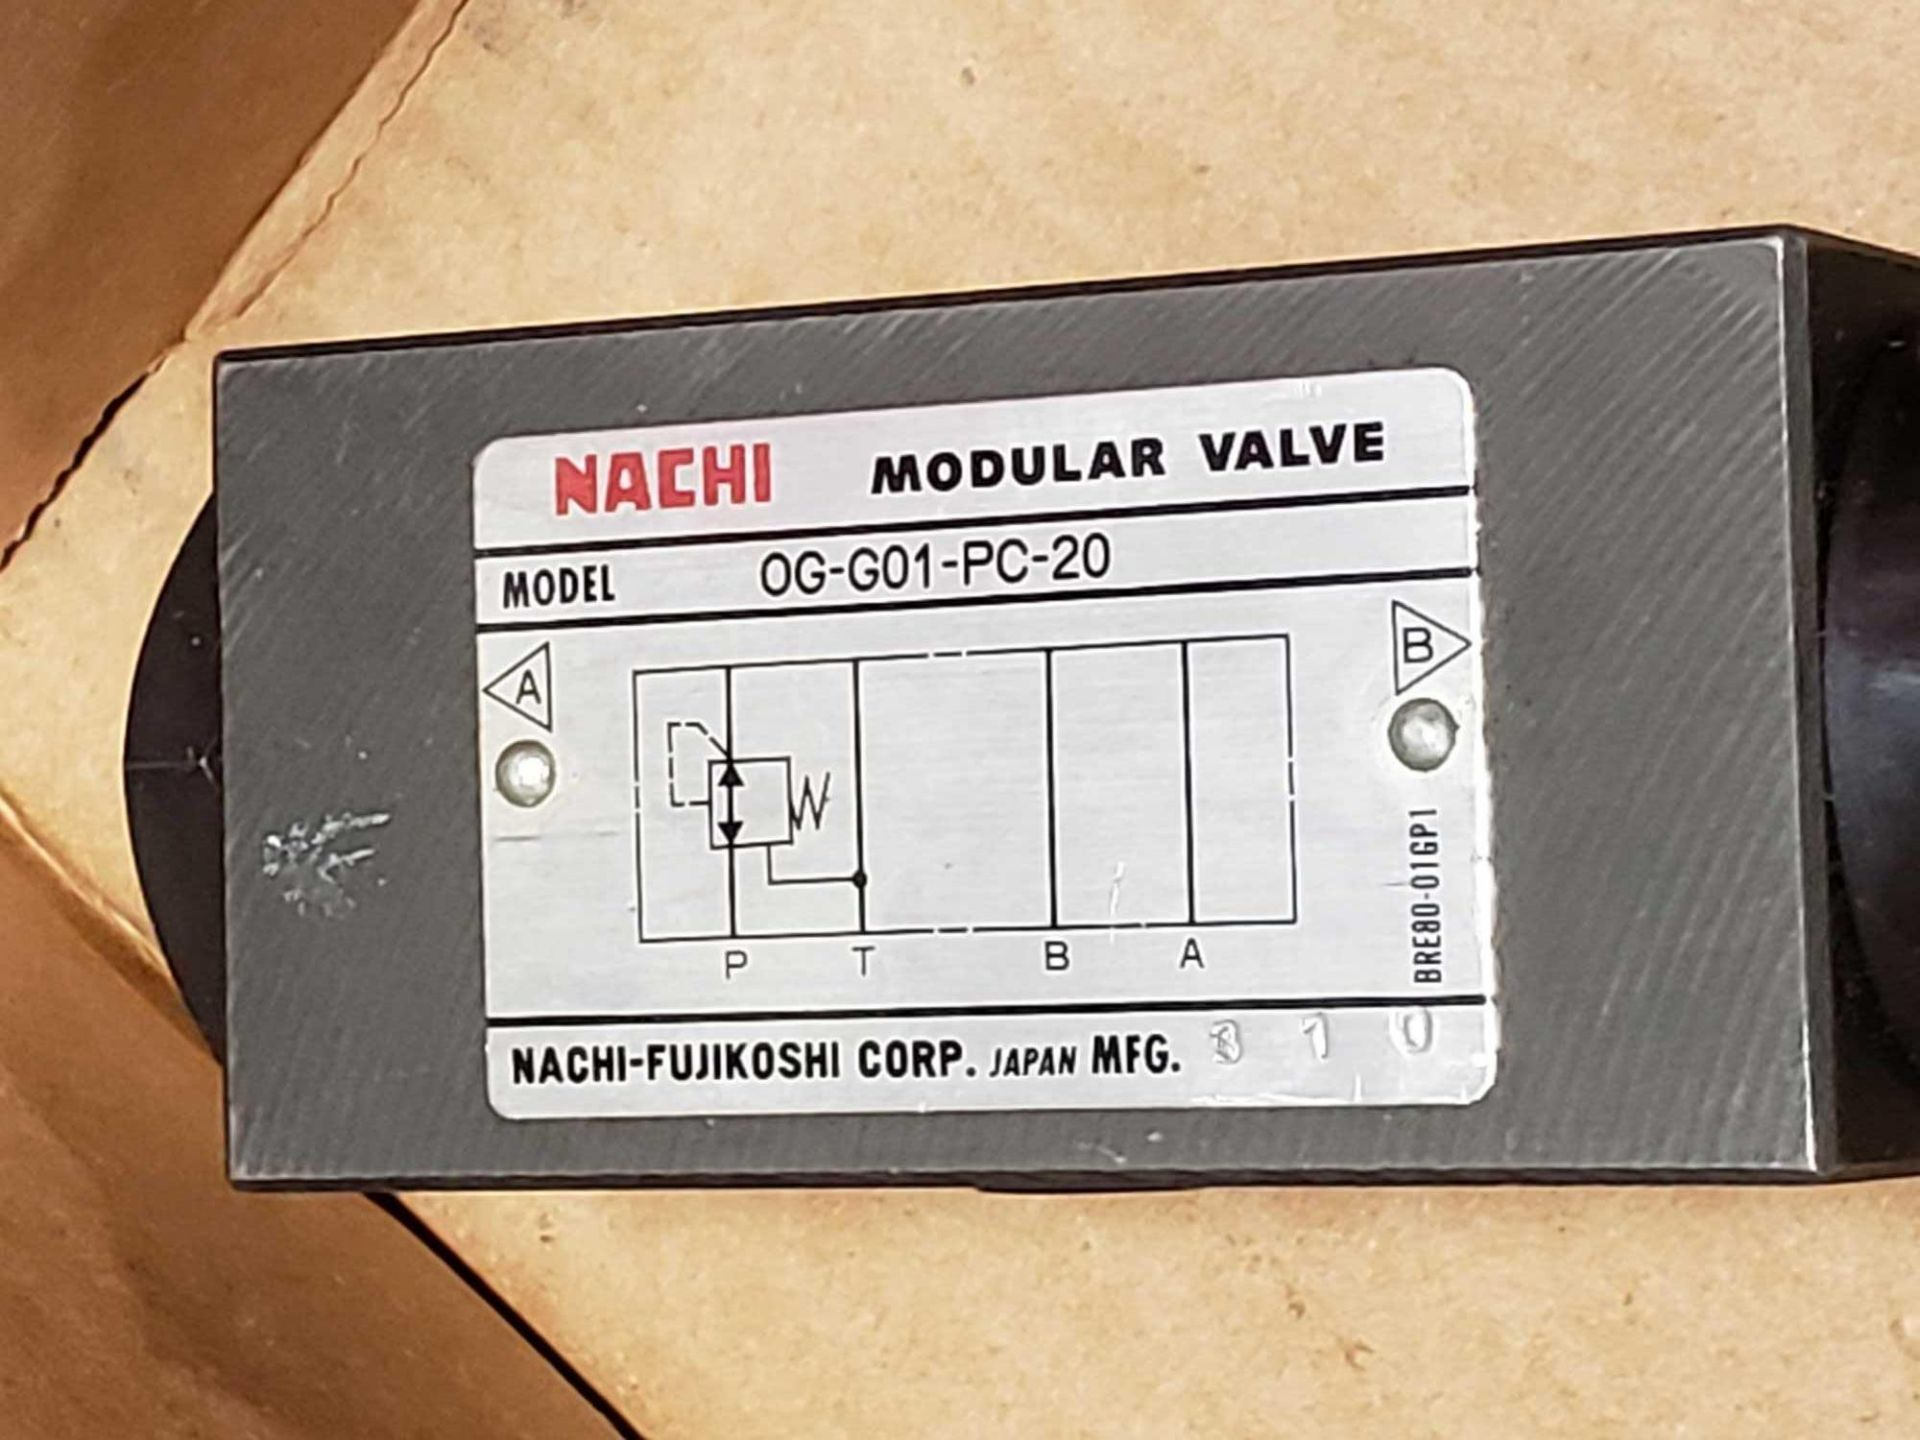 Lot 36 - Nachi hydraulic valve model OG-G01-PC-20. New as pictured.